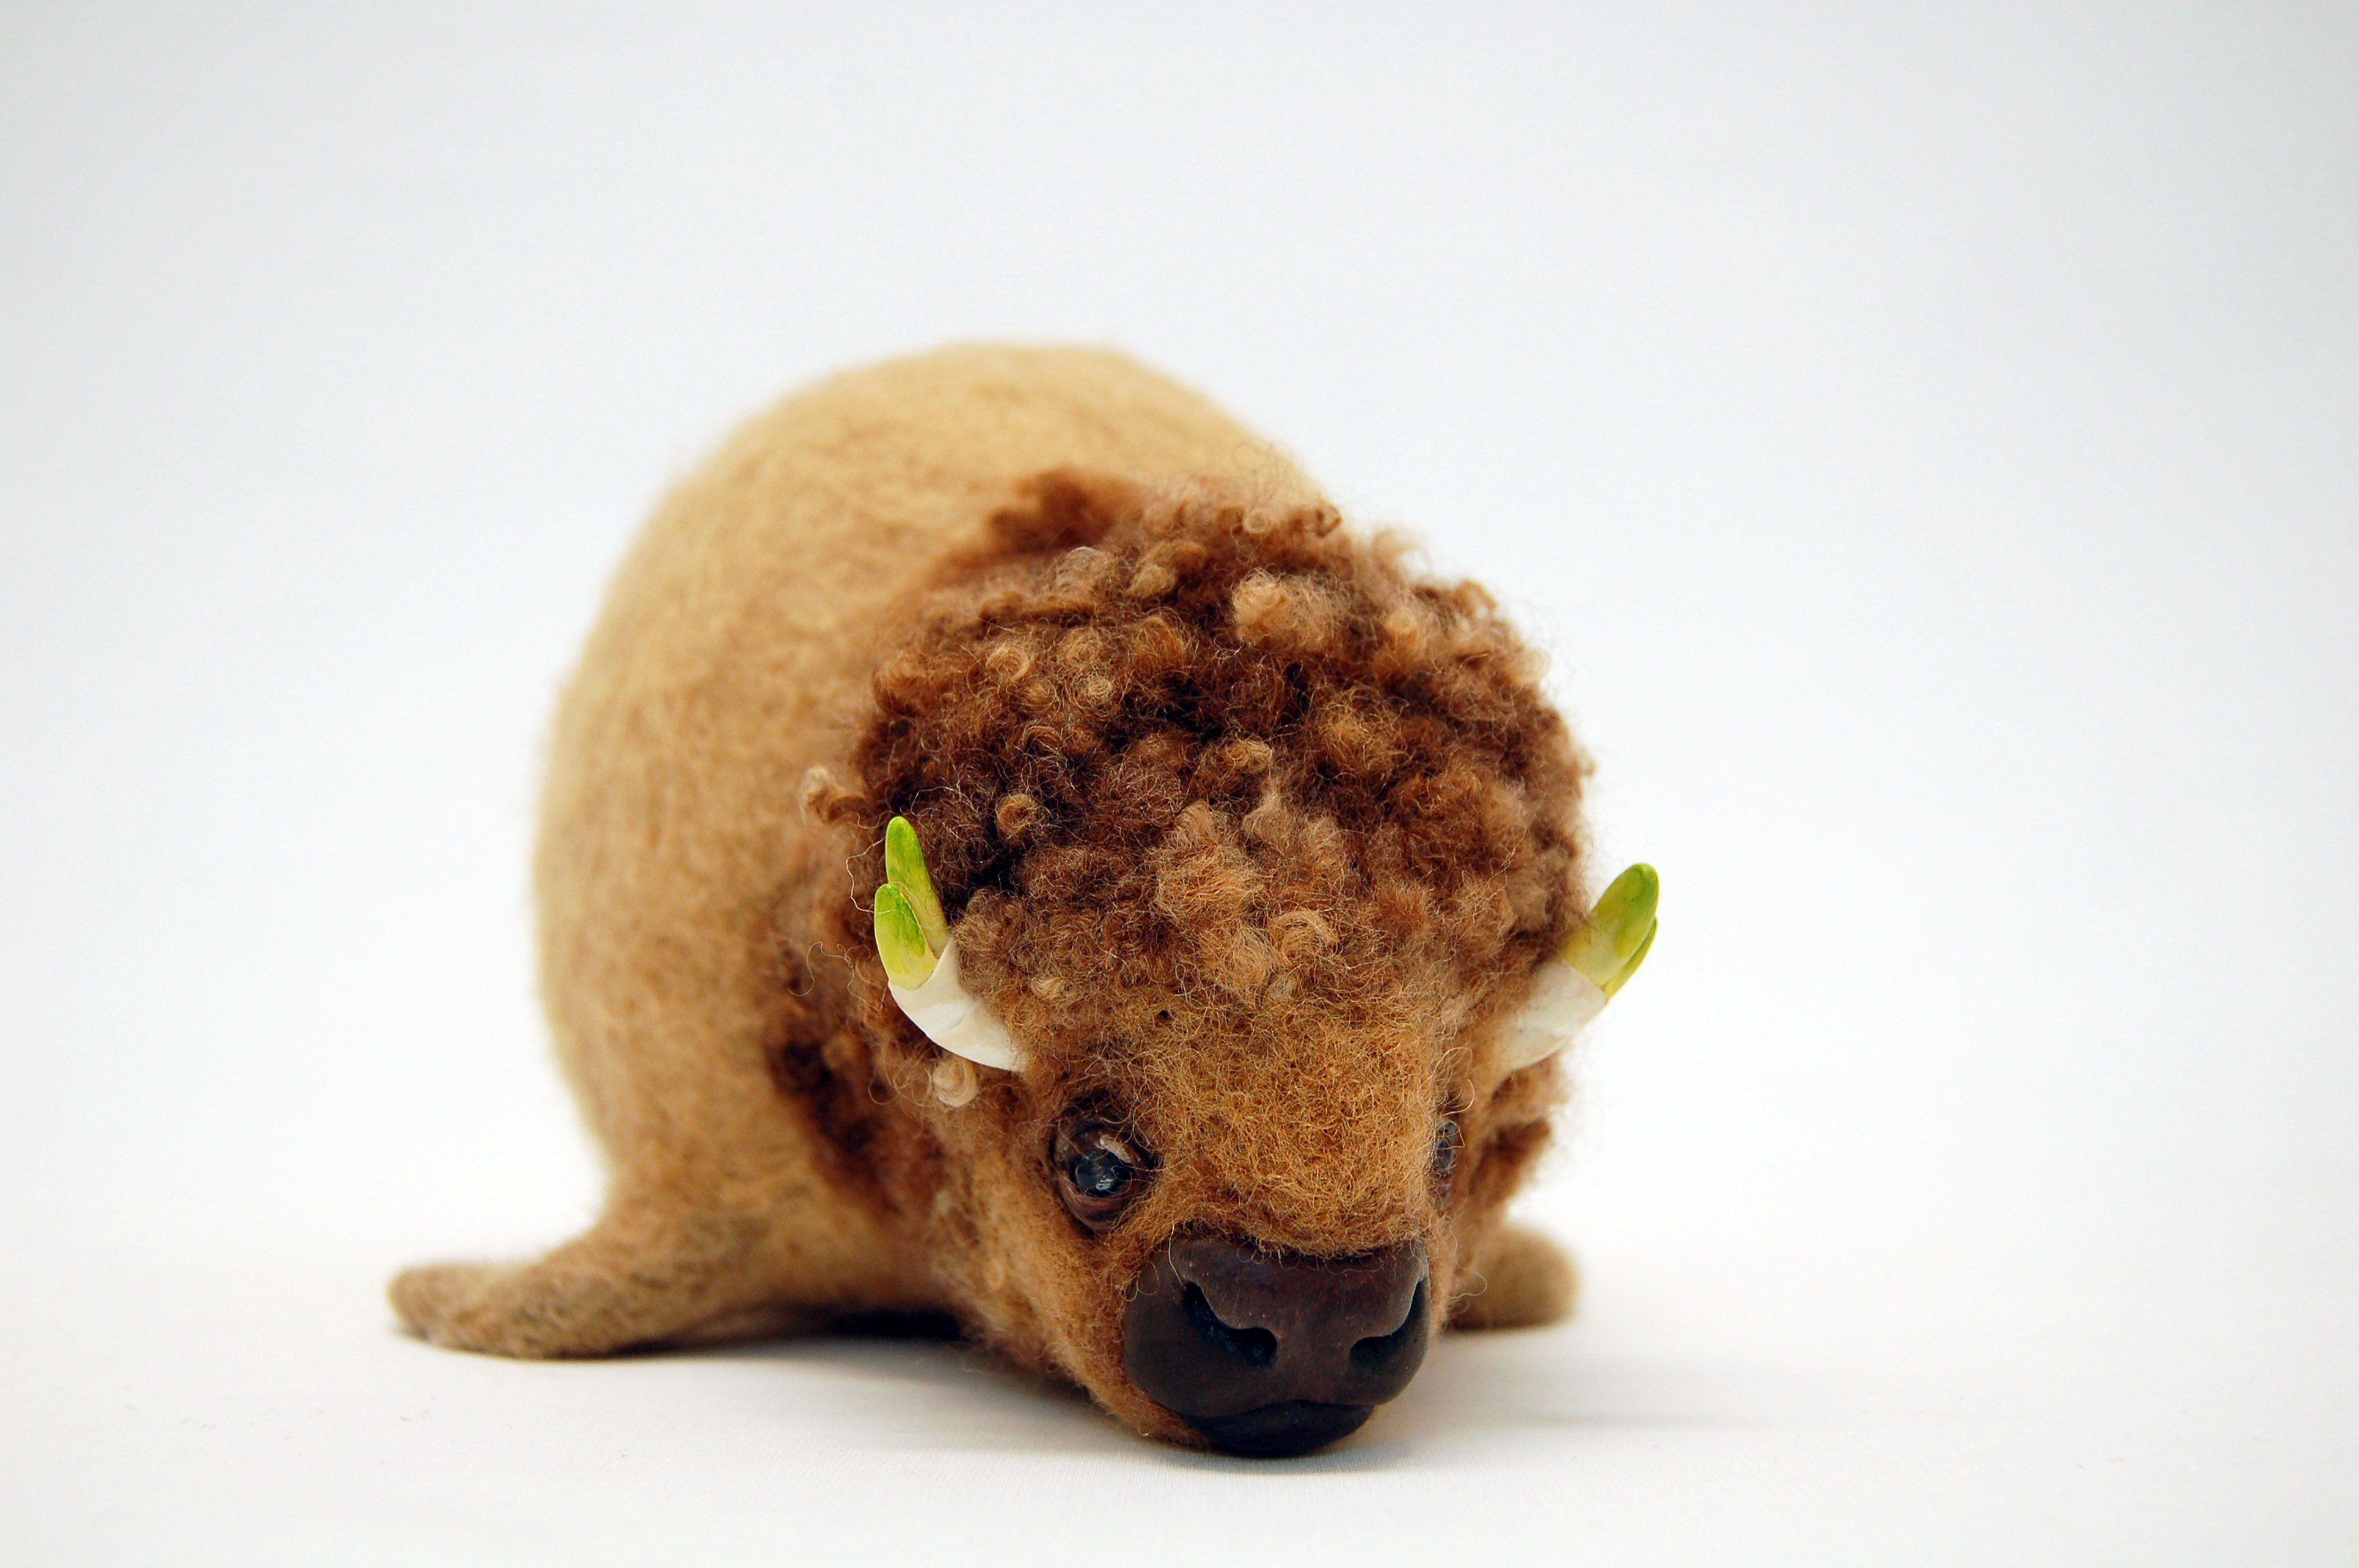 Felt and mixed media buffalo sculpture by Karina Kalvaitis - all rights reserved